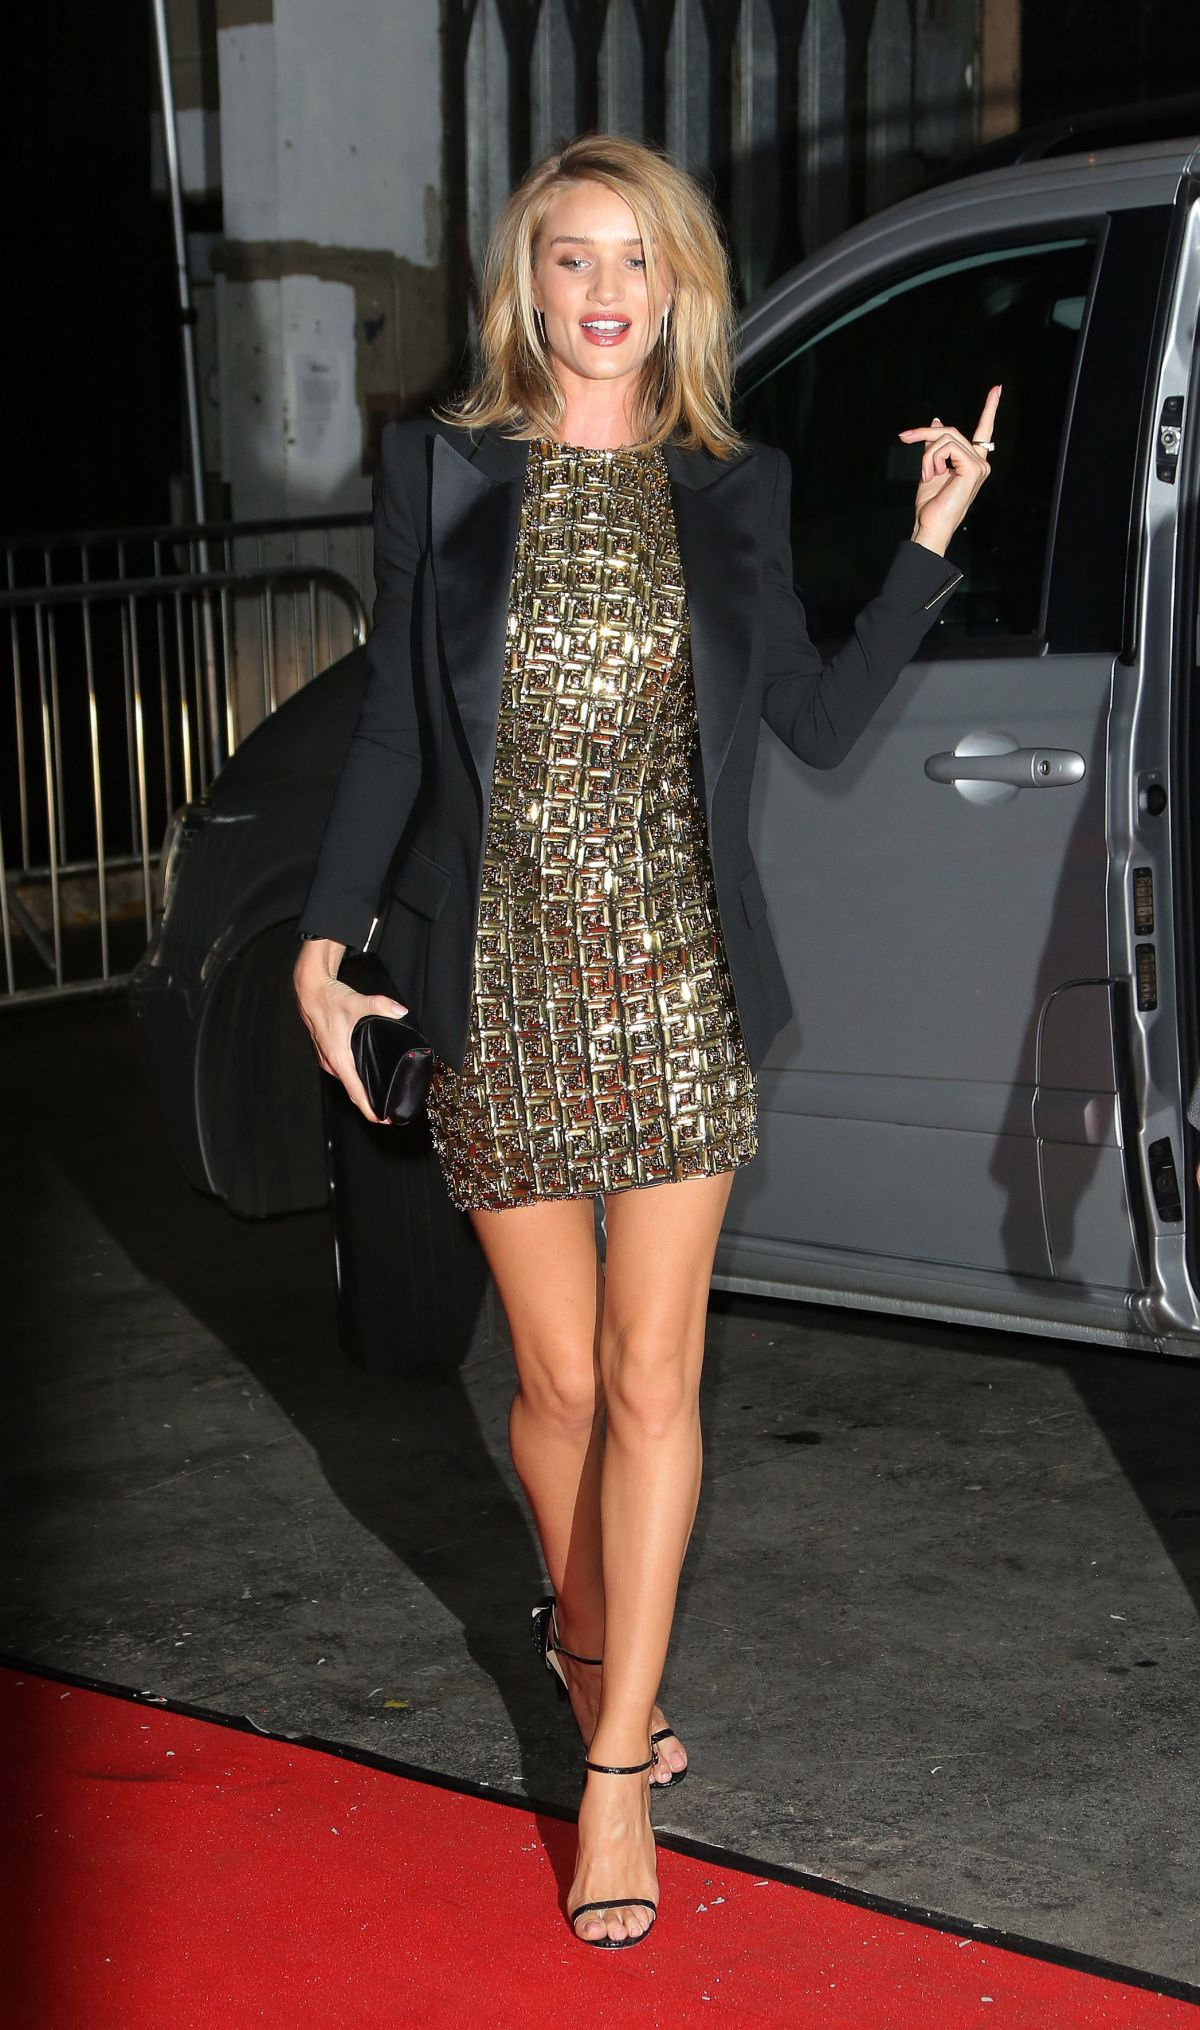 ROSIE HUNTINGTON-WHITELEY at Universal Music Brits Party in London